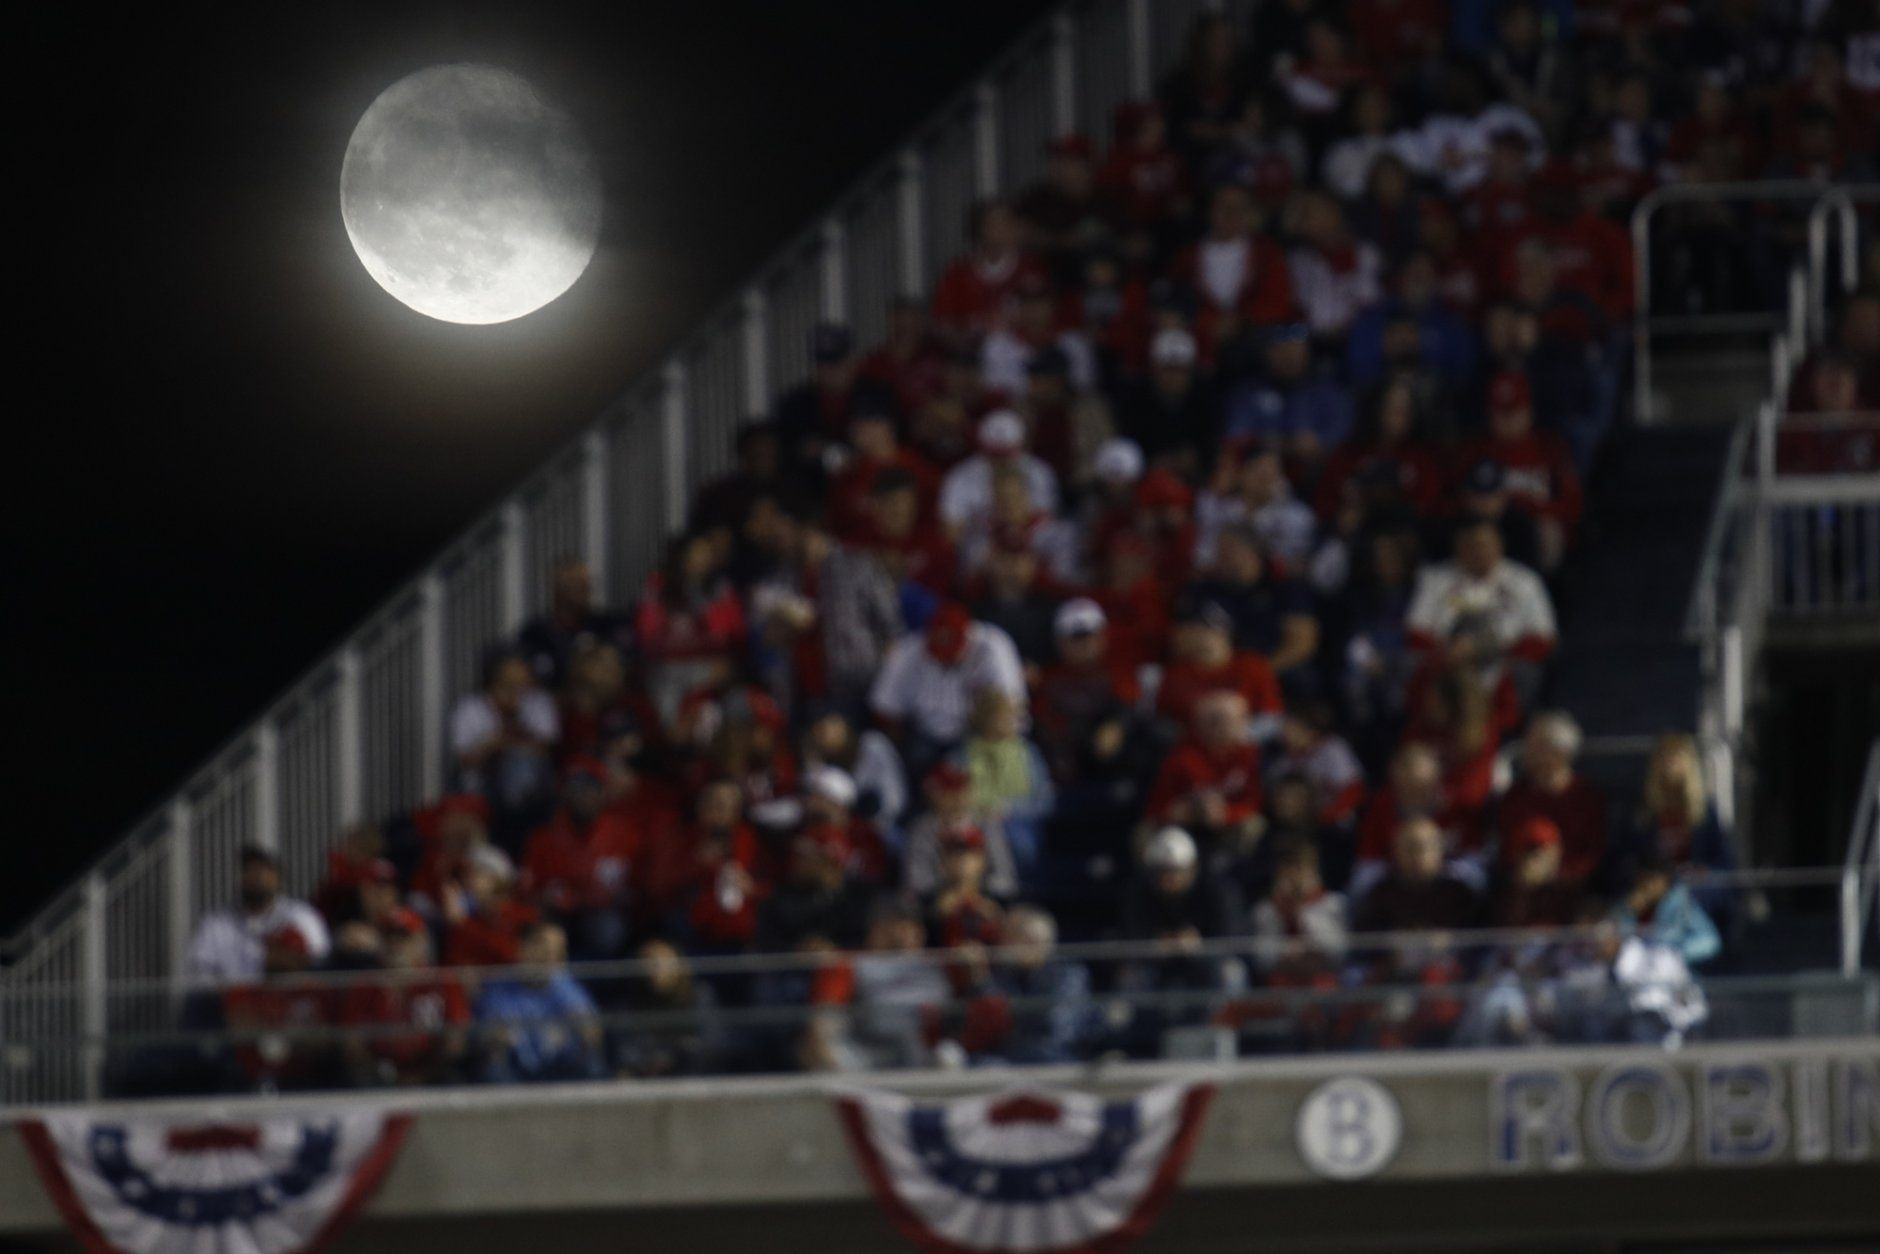 The moon is seen over Nationals Park during the third inning of Game 4 of the baseball National League Championship Series between the St. Louis Cardinals and the Washington Nationals Tuesday, Oct. 15, 2019, in Washington. (AP Photo/Patrick Semansky)